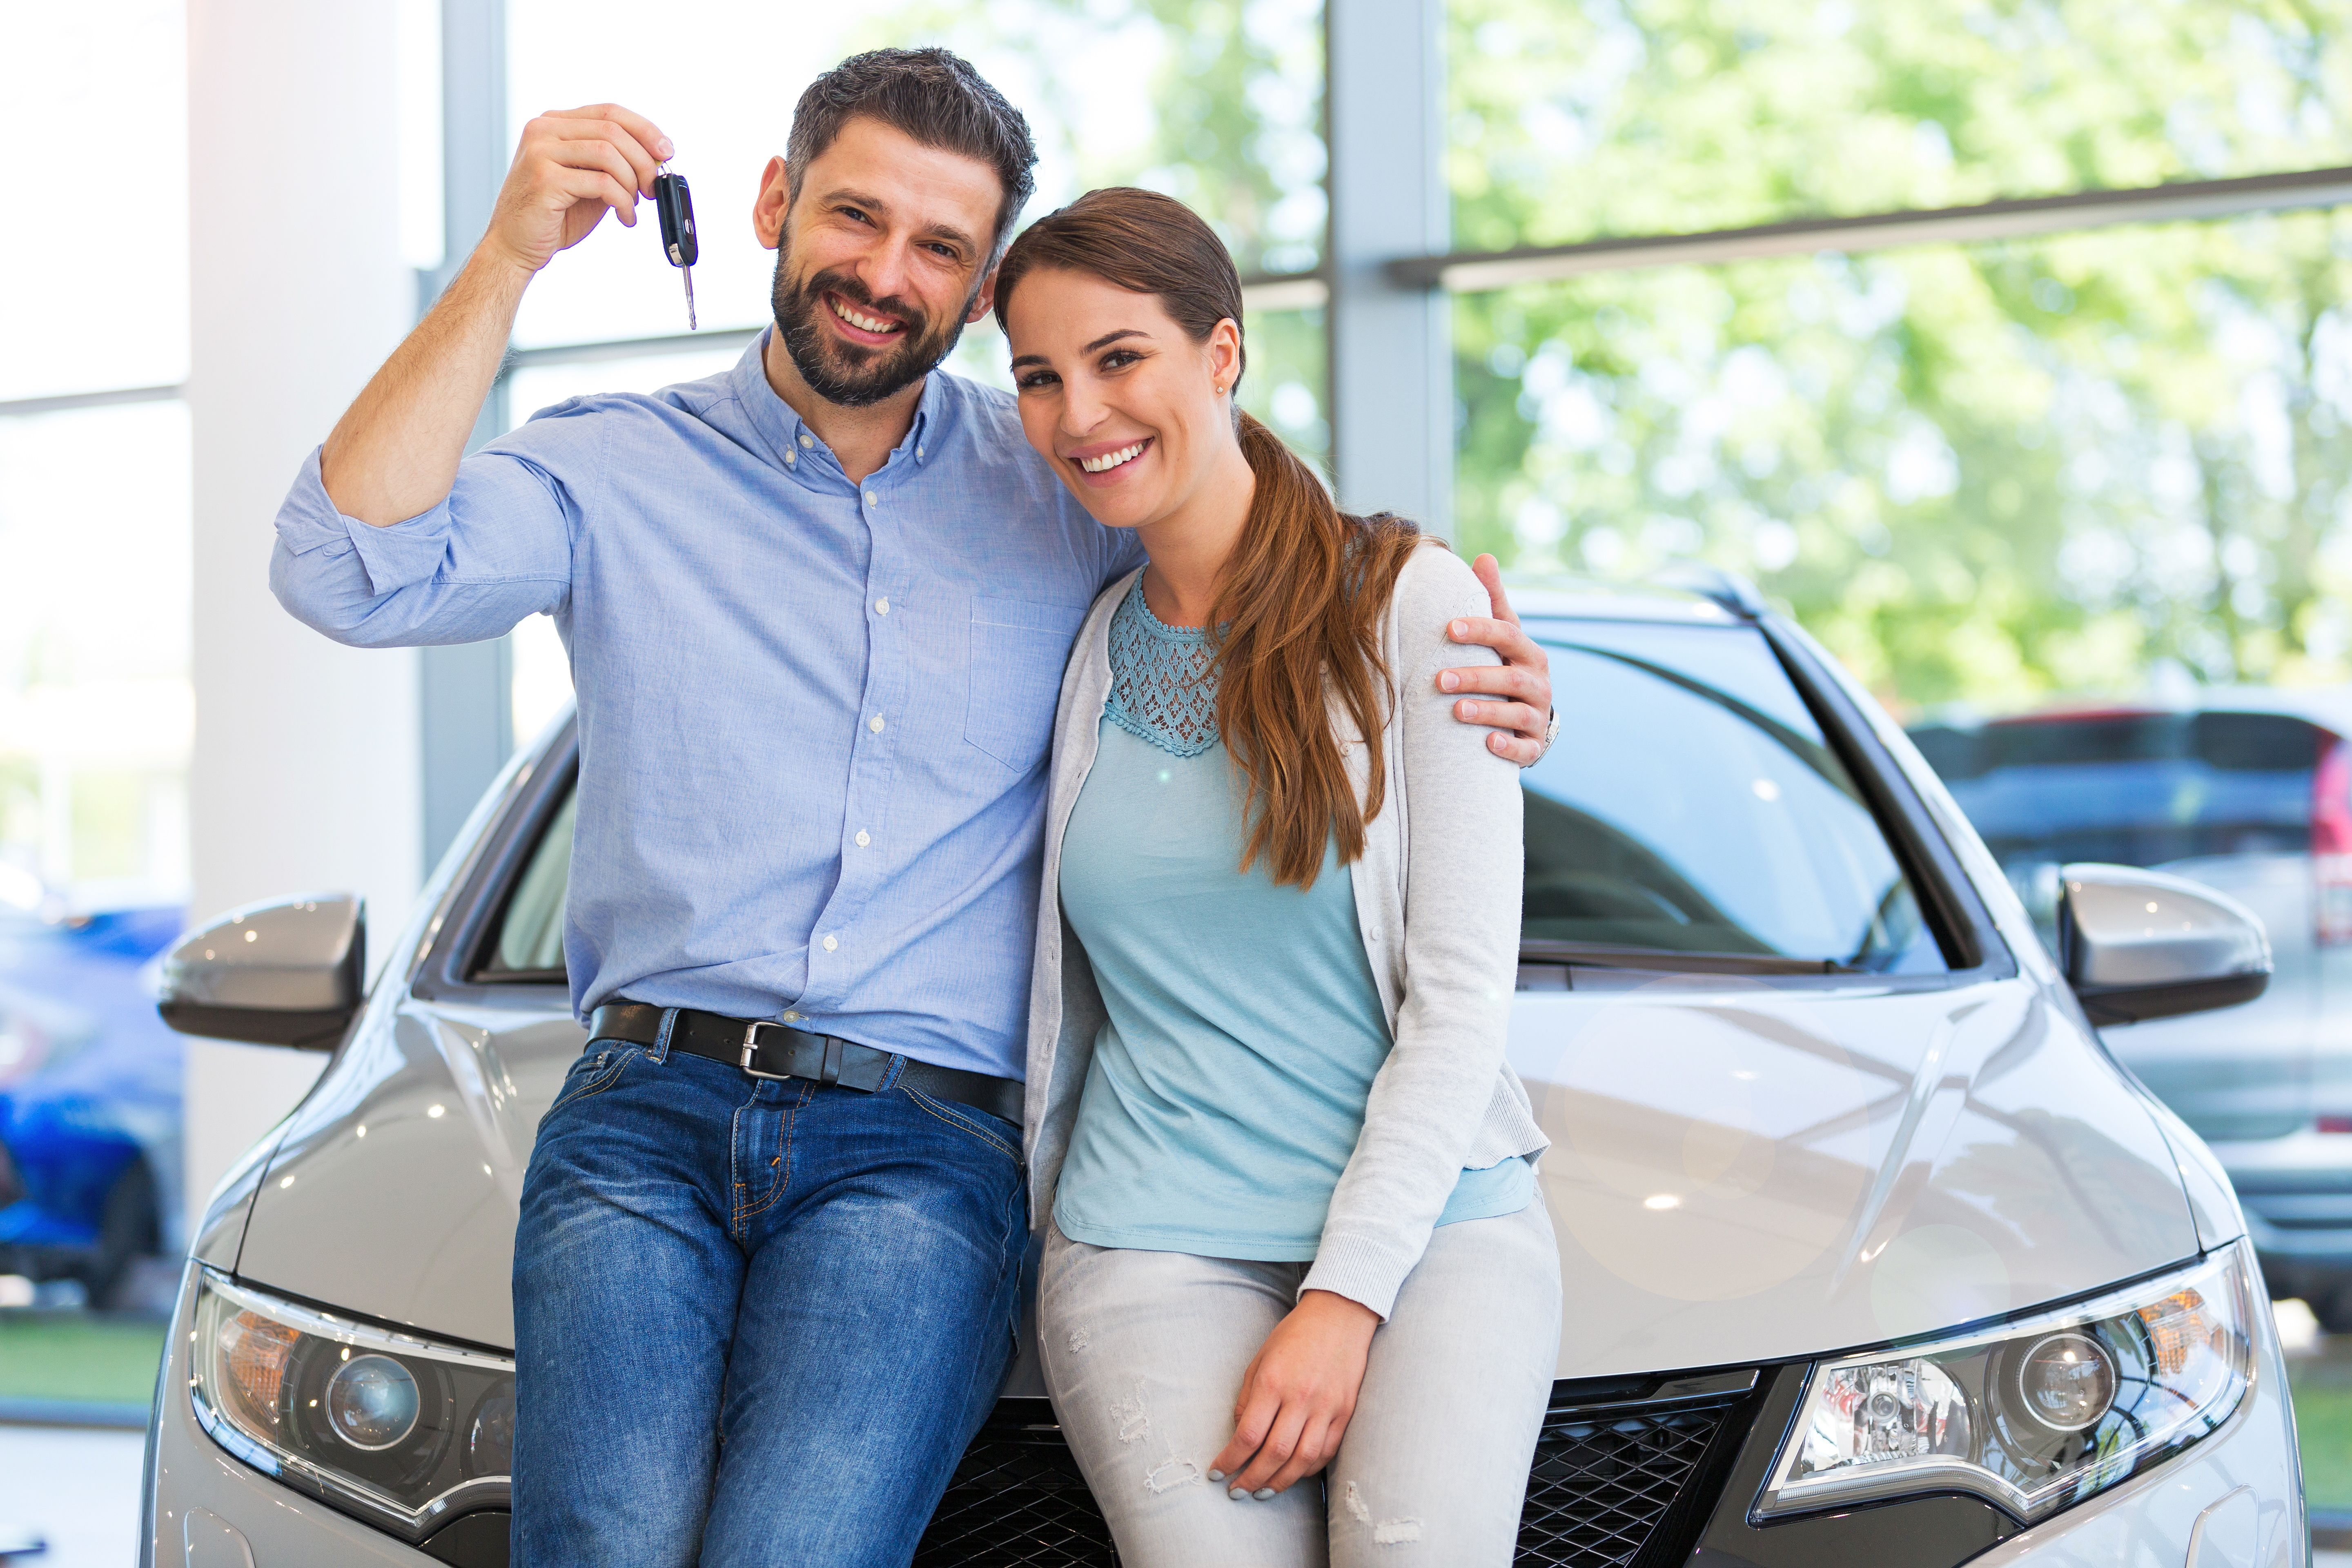 Knowing These Values May Save You Thousands Rydeshopper Com In 2020 Car Loans Car Buying Car Buyer